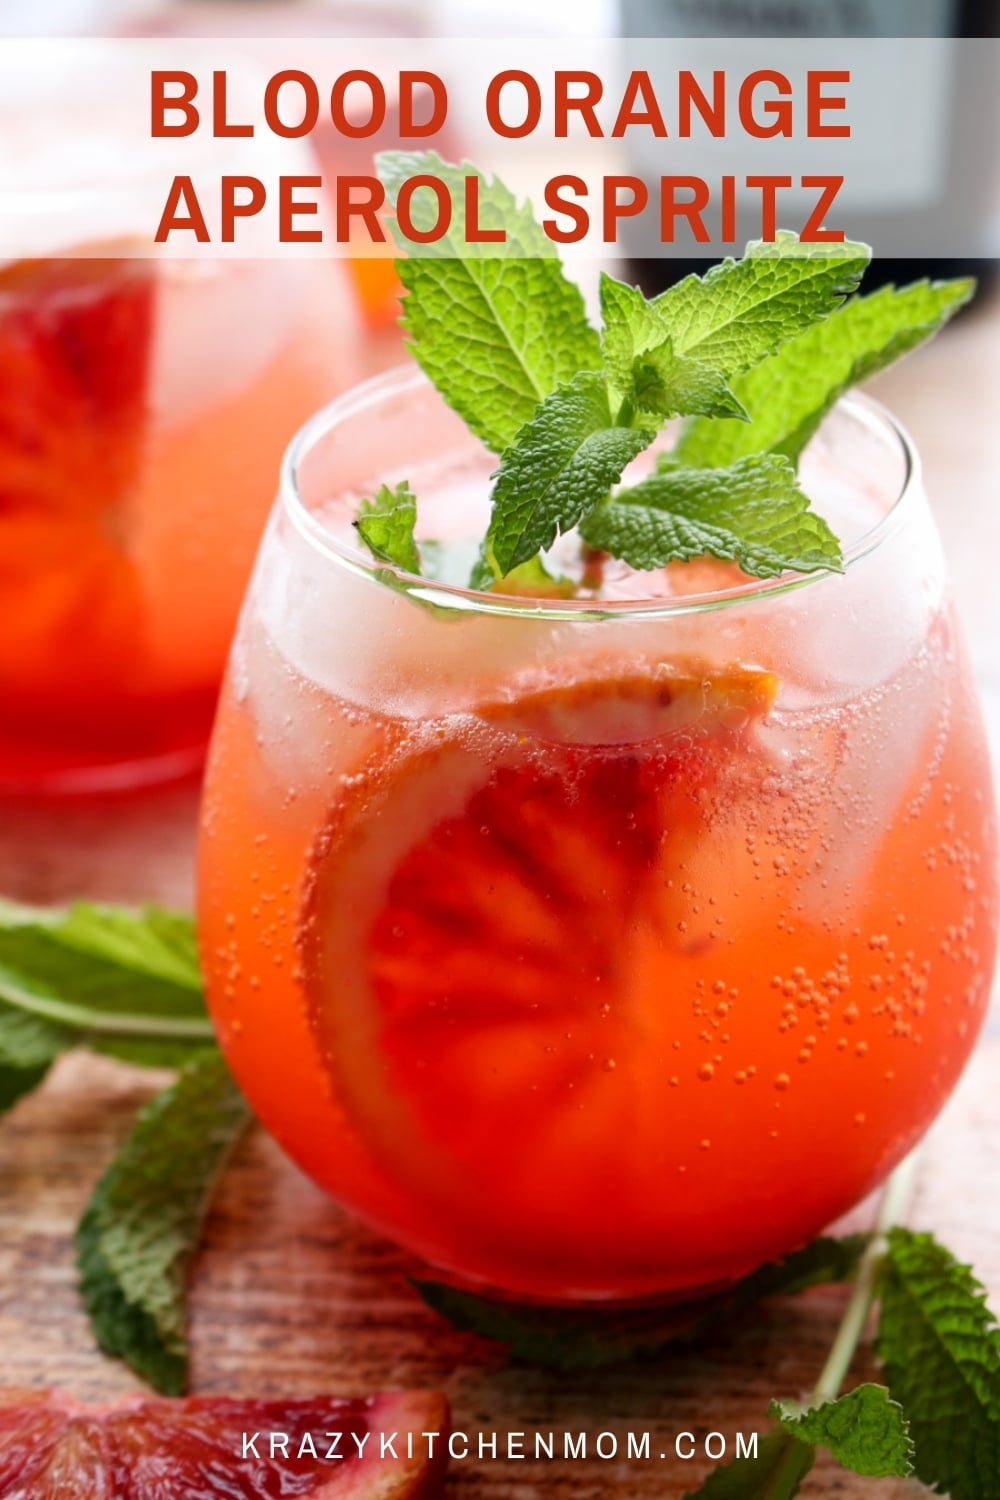 Blood Orange Aperol Spritz is a traditional Aperol Spritz made with blood orange juice and slices and then garnished with fresh mint. via @krazykitchenmom